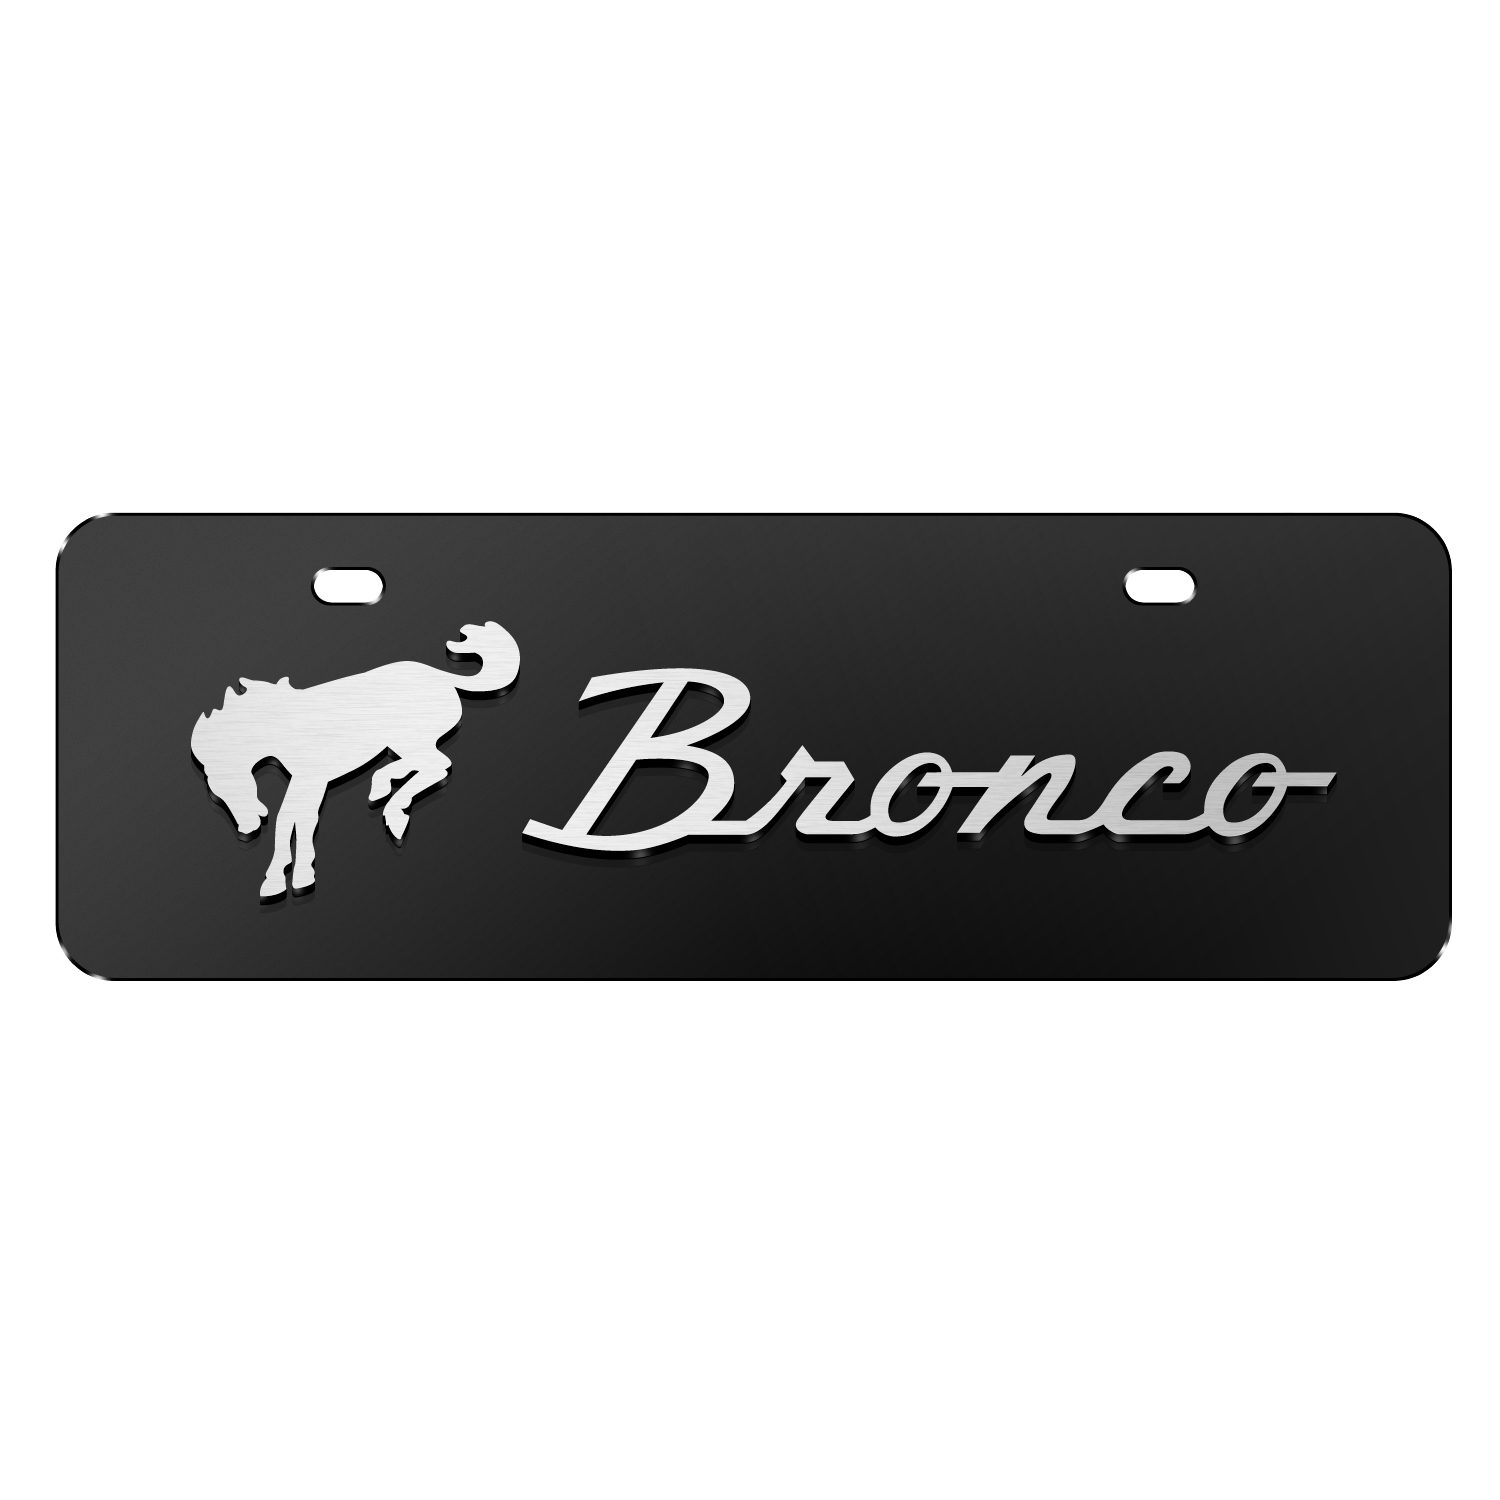 """Ford Bronco 3D Logo on Black 12""""x4"""" Half-Size Stainless Steel License Plate"""